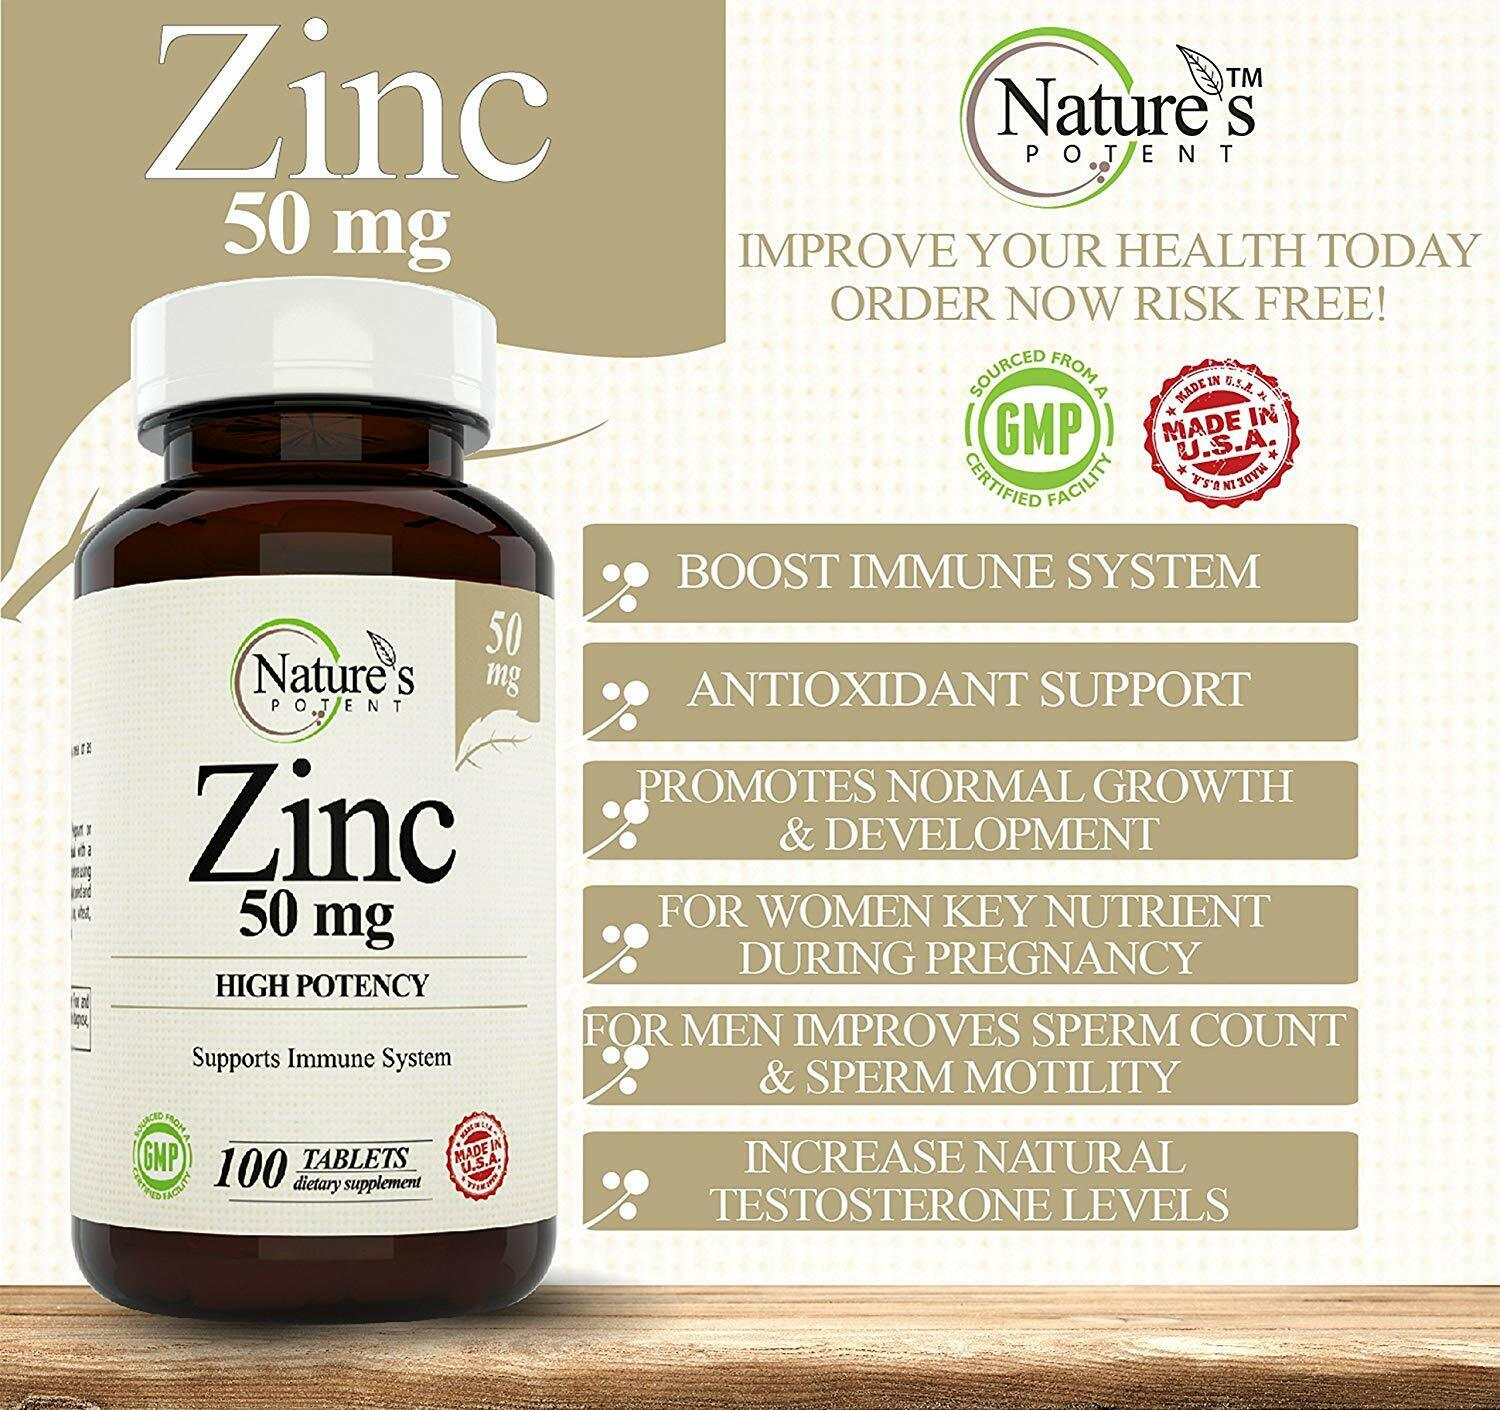 Zinc 50mg, [High Potency] Immune System Support - Immunity Booster (100 Tablets) 1